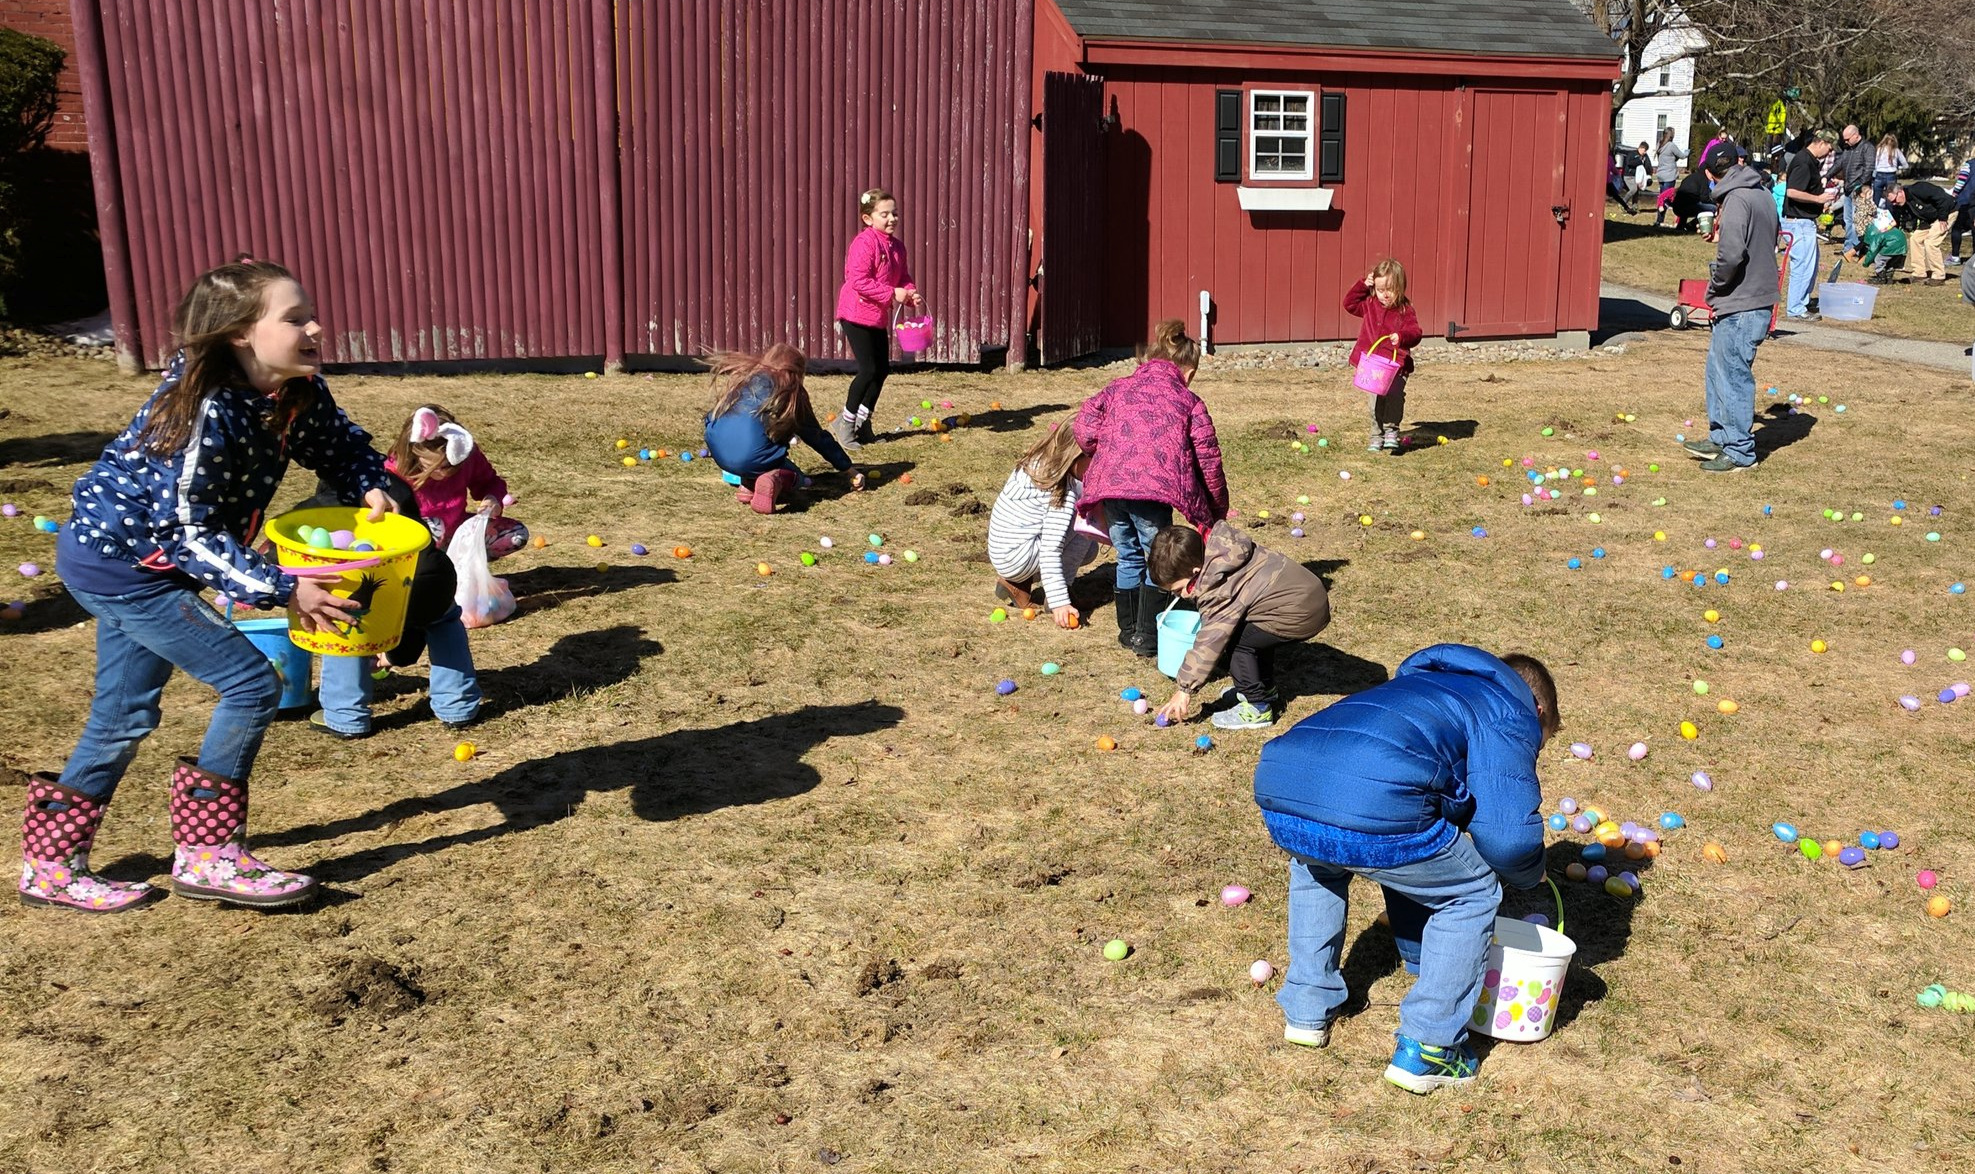 Sandown Egg Hunt is this Sat. April 13. Plaistow Egg Hunt Sat. April 20. North Shore on Easter Sunday April 21